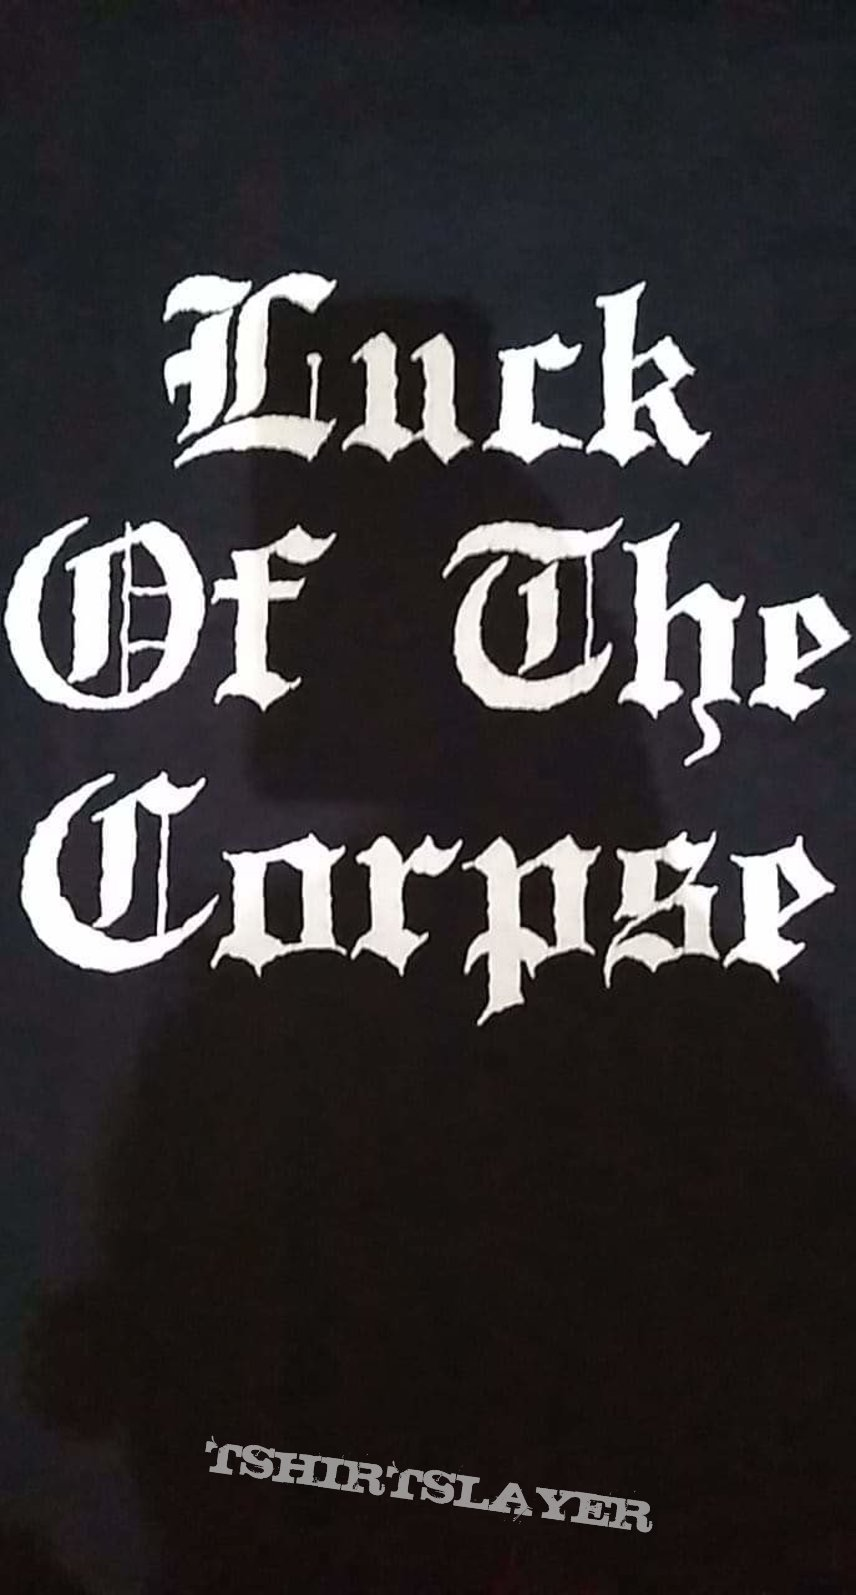 Deceased Luck Up The Corpse Relapse Original 1991